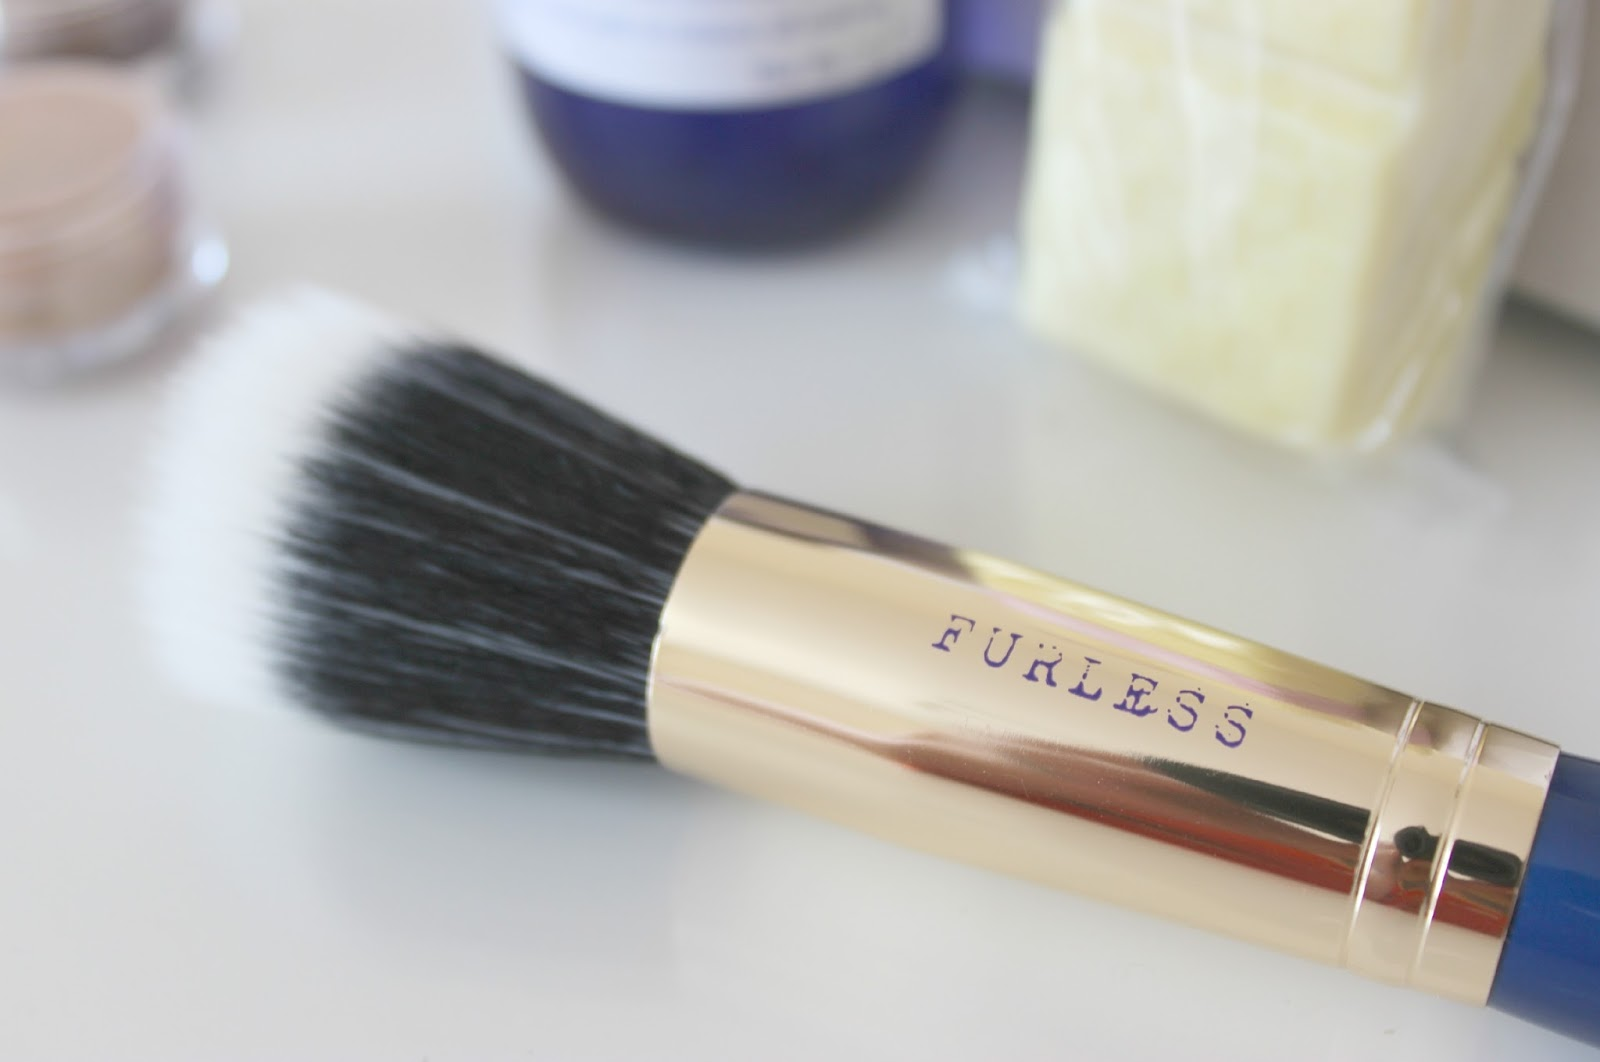 A picture of vegan friendly furless stiplling brush